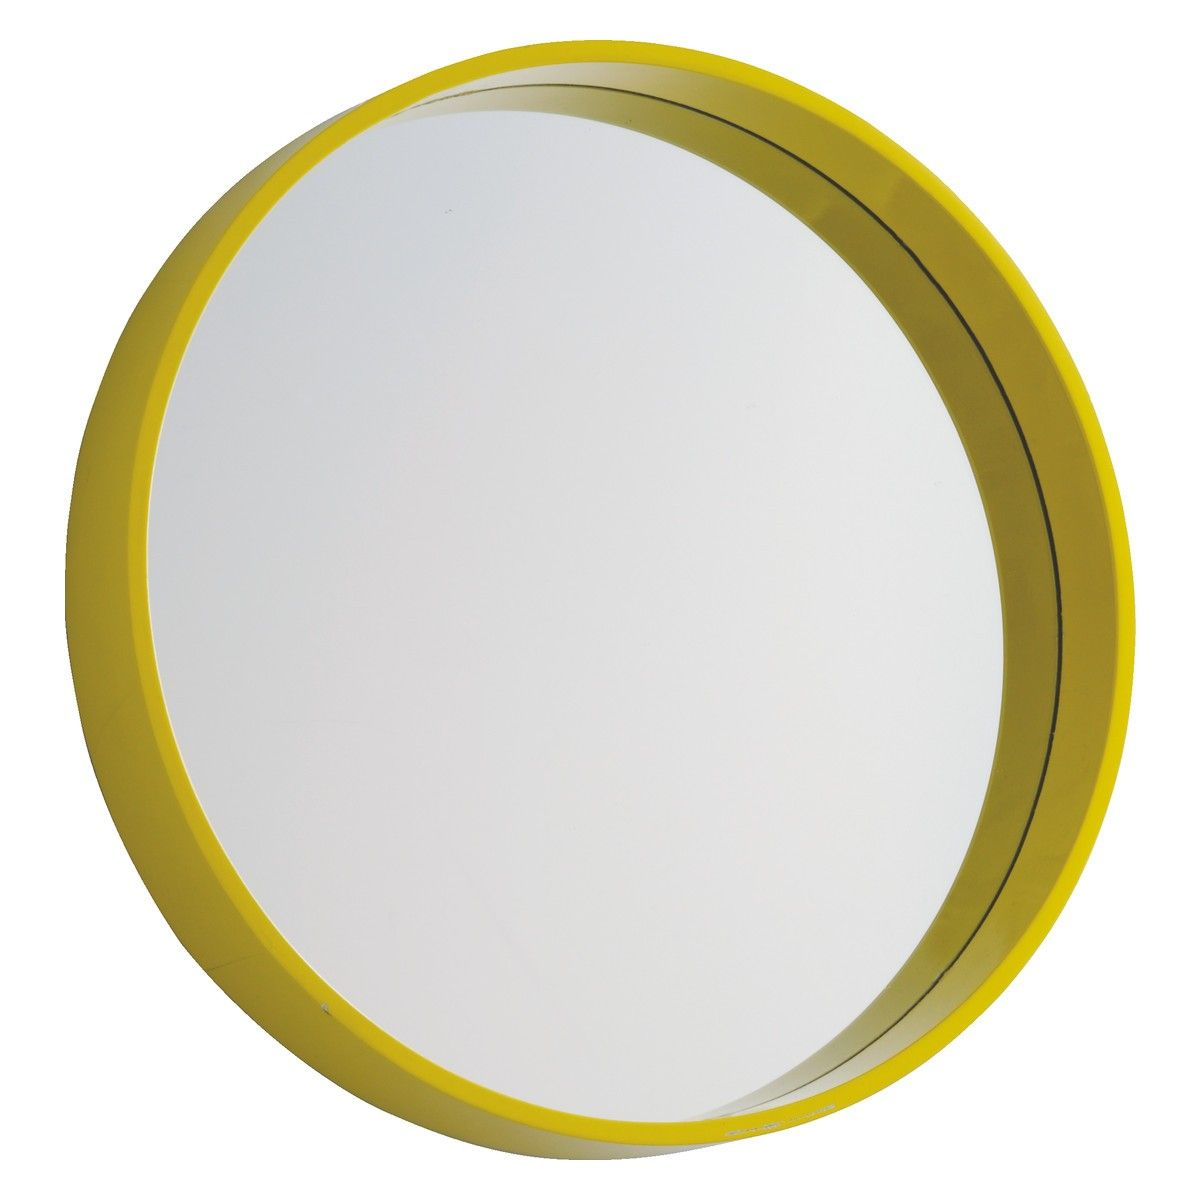 Habitat Outlet Hamburg Aimee Yellow Round Wall Mirror D41cm House Styling In 2019